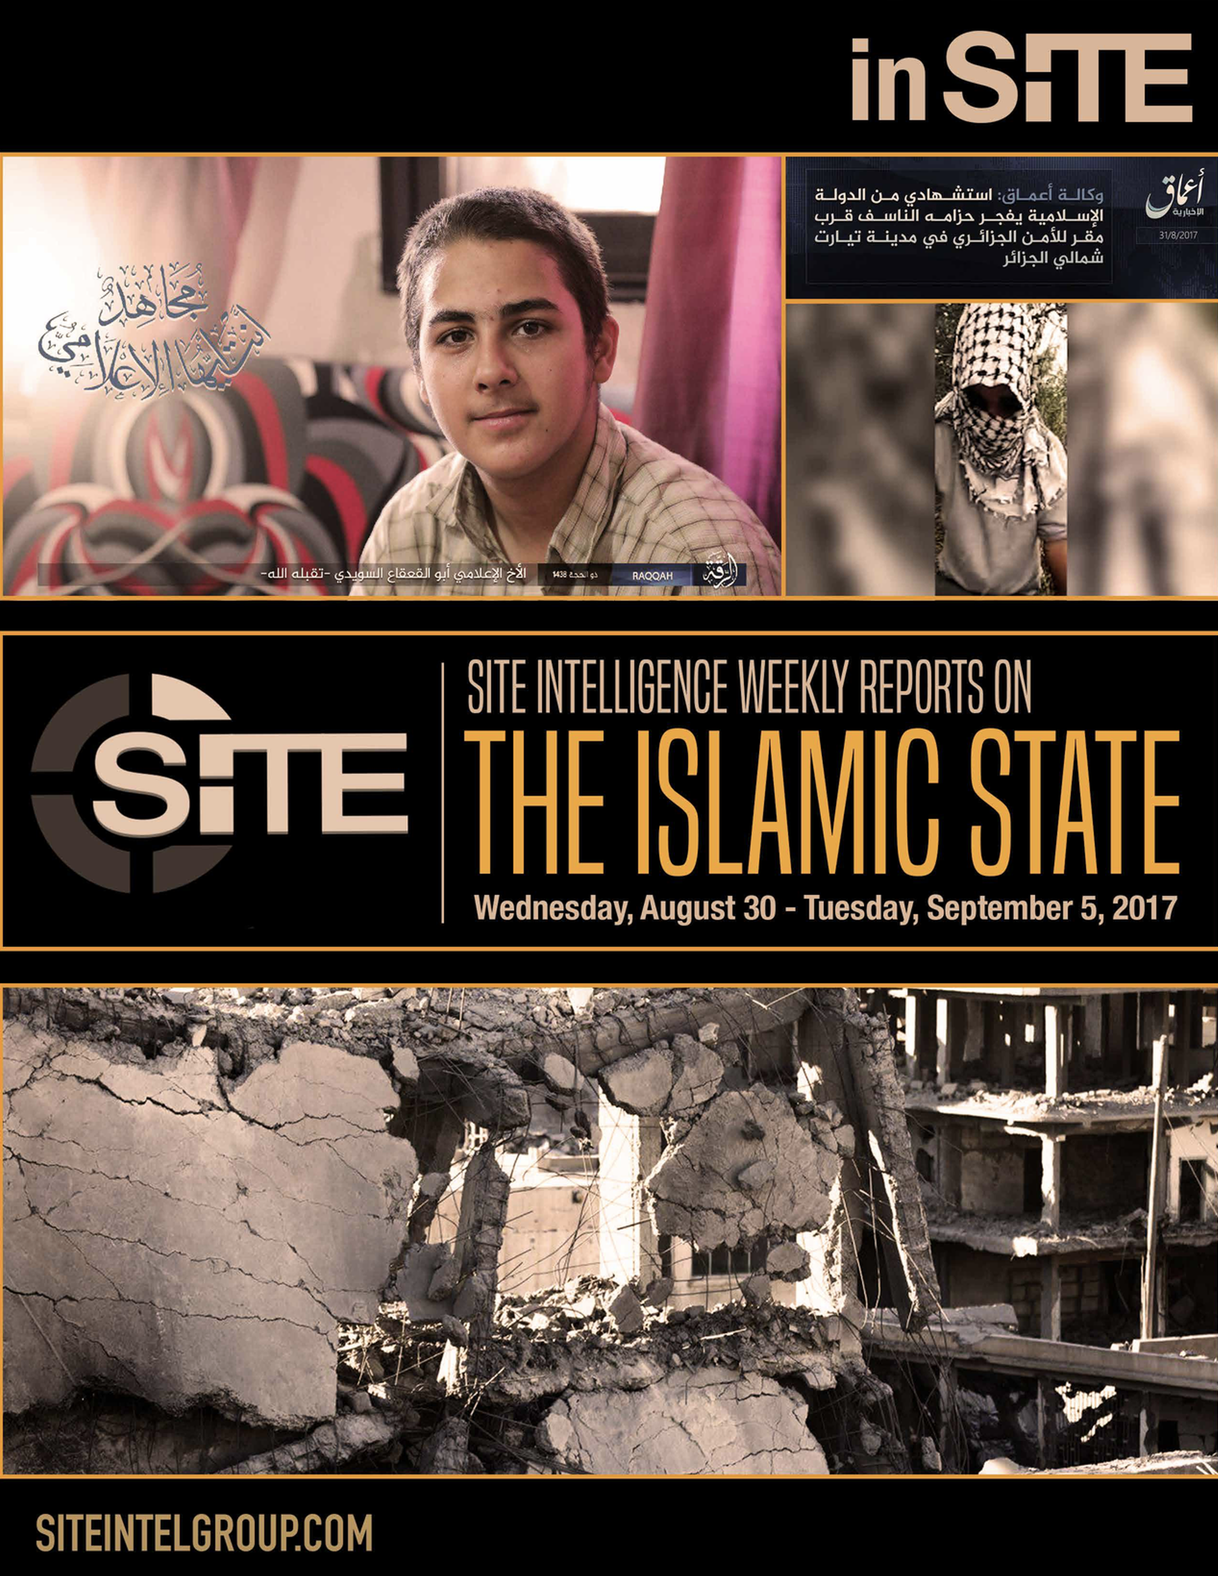 Weekly inSITE on the Islamic State, August 30-September 5